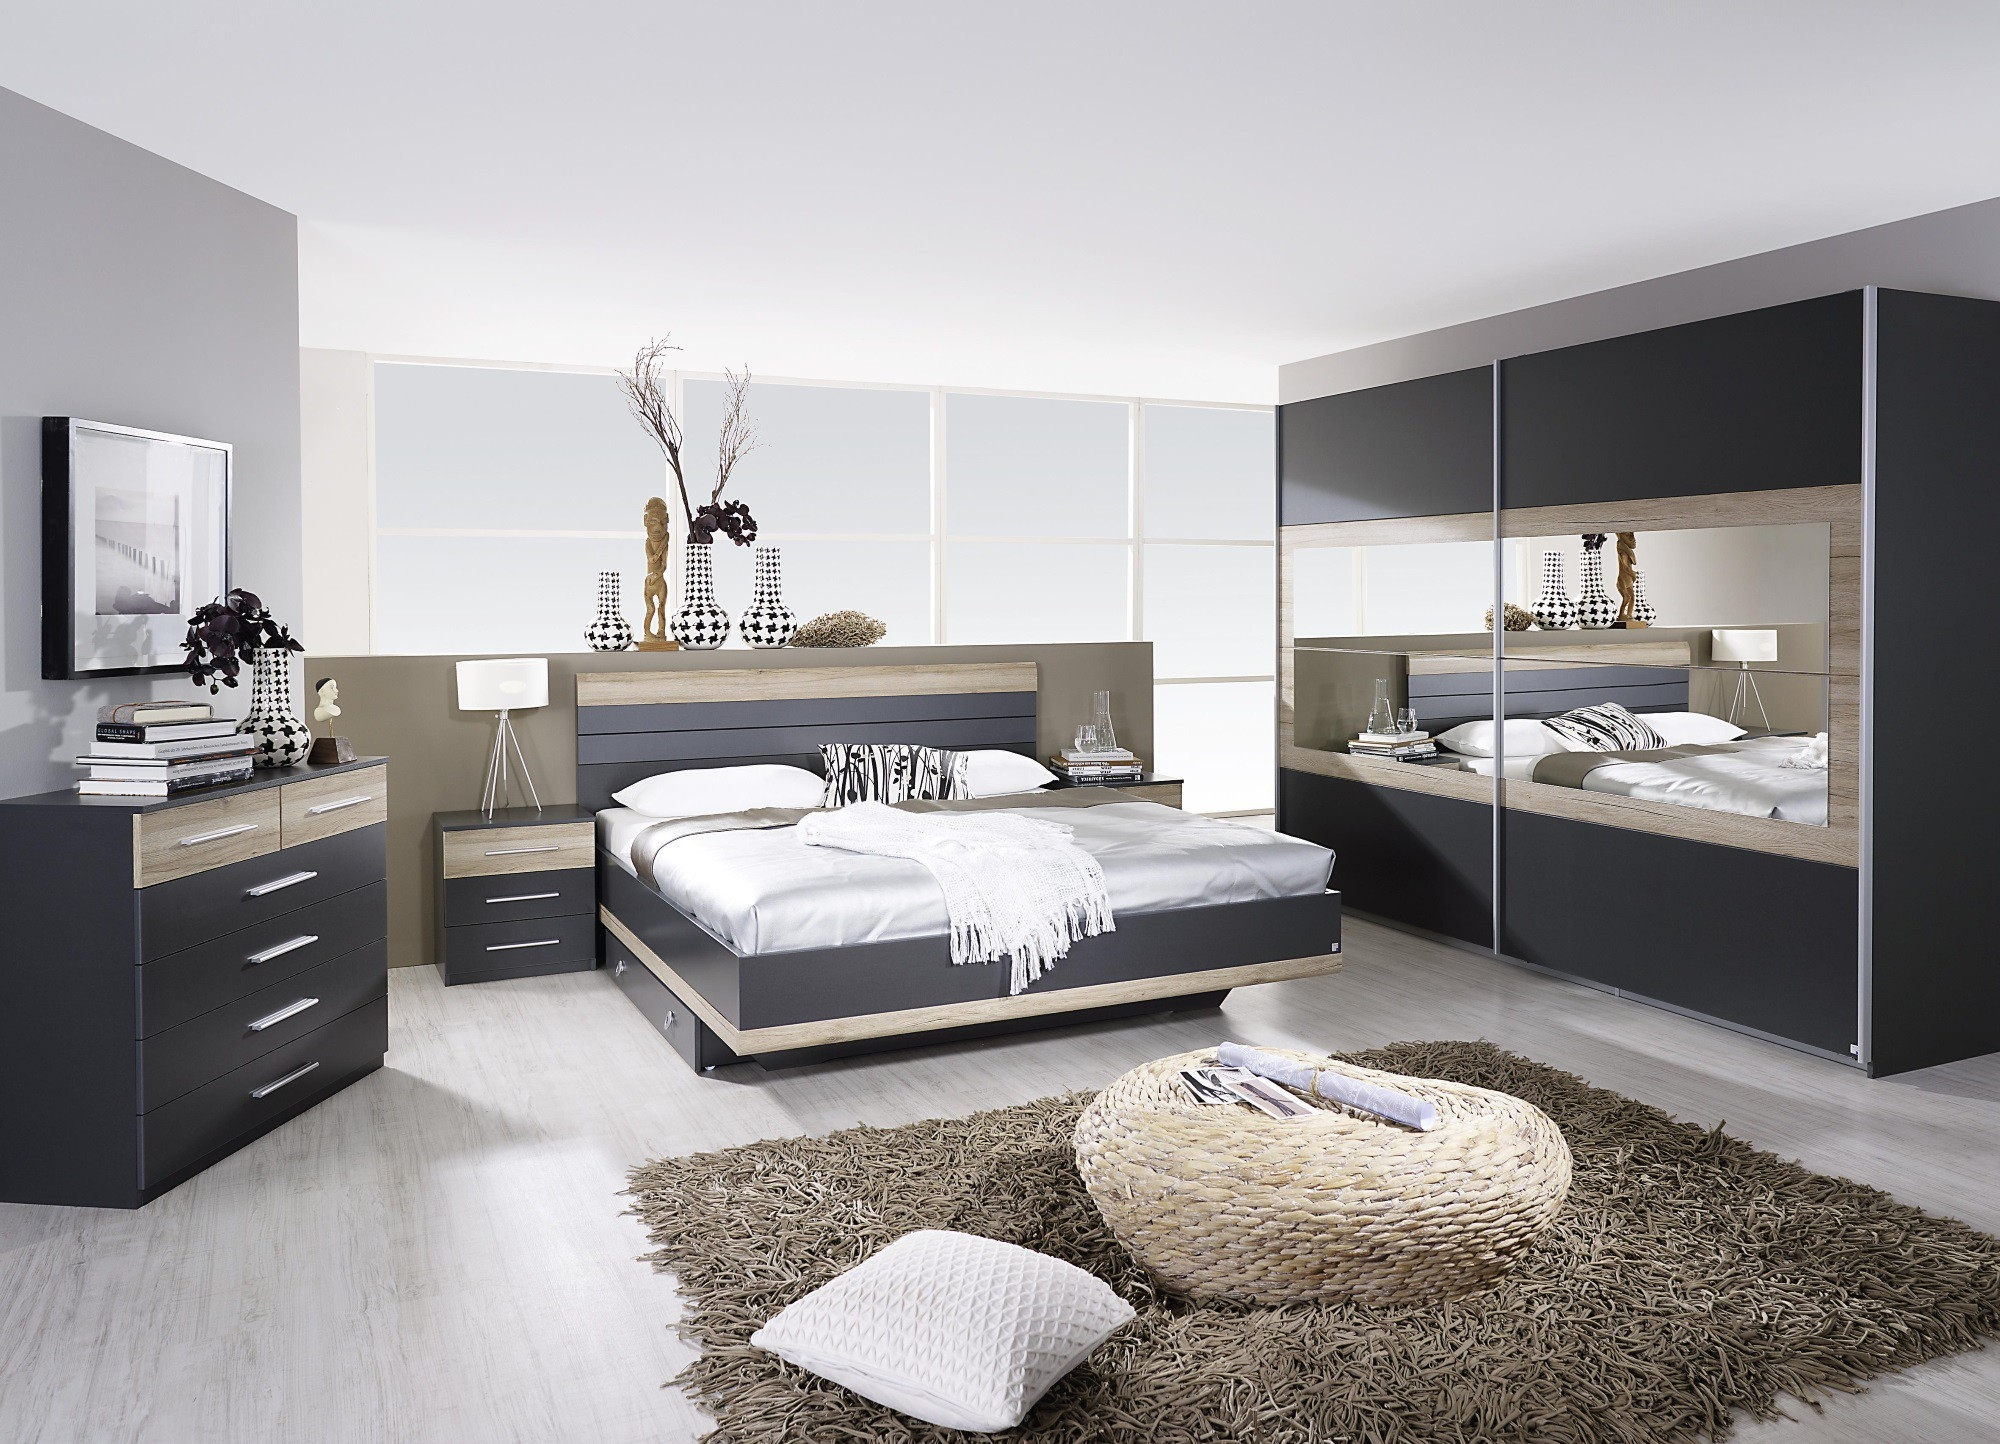 Chambre adulte compl te contemporaine gris ch ne clair for Chambre complete adulte rustique